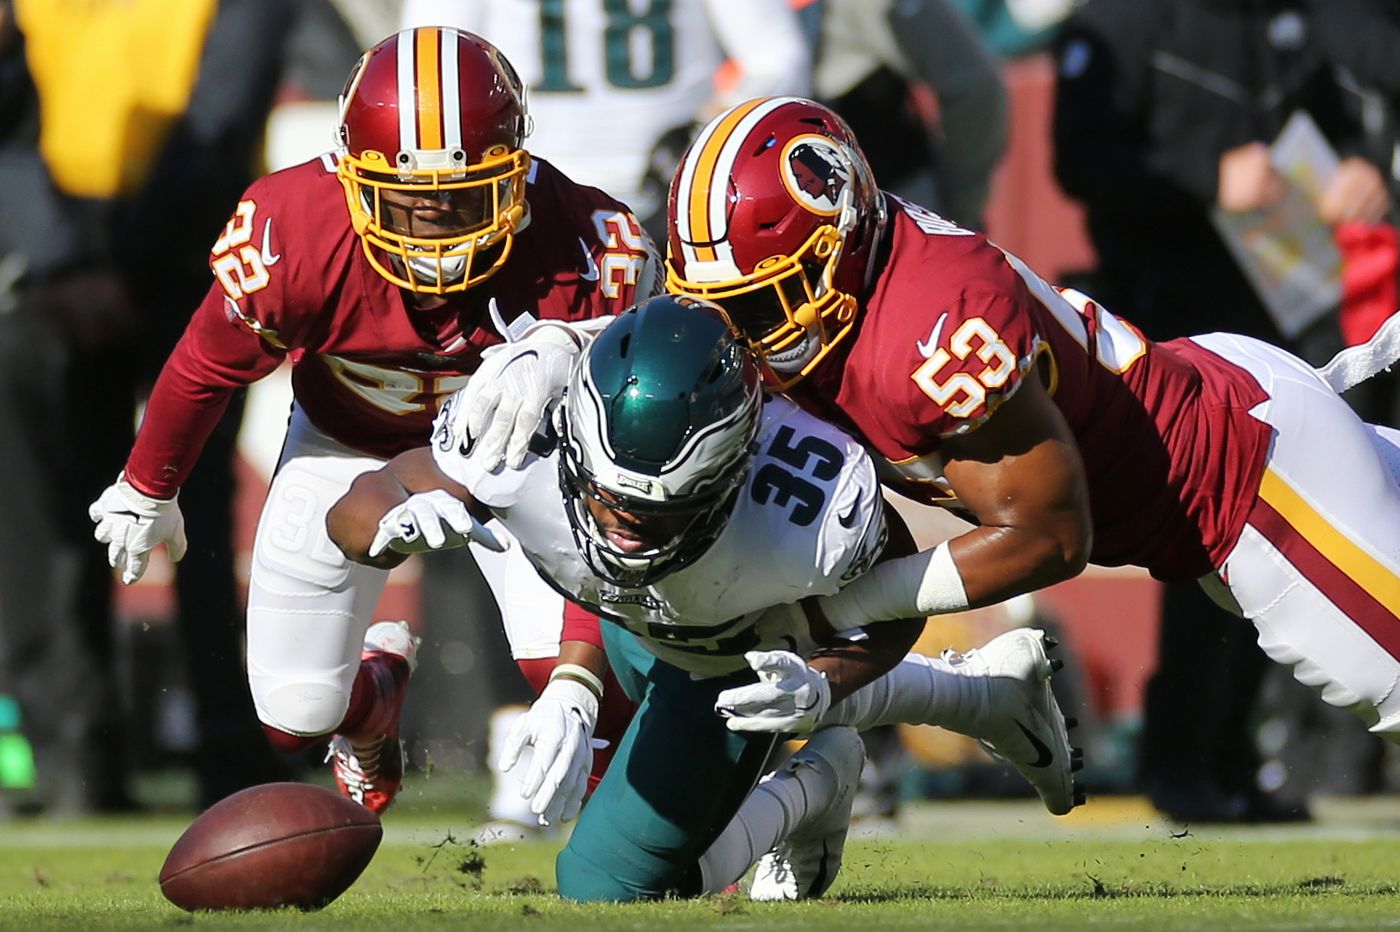 Eagles beat Redskins, 37-27, but they urgently need to play with more passion | Bob Ford